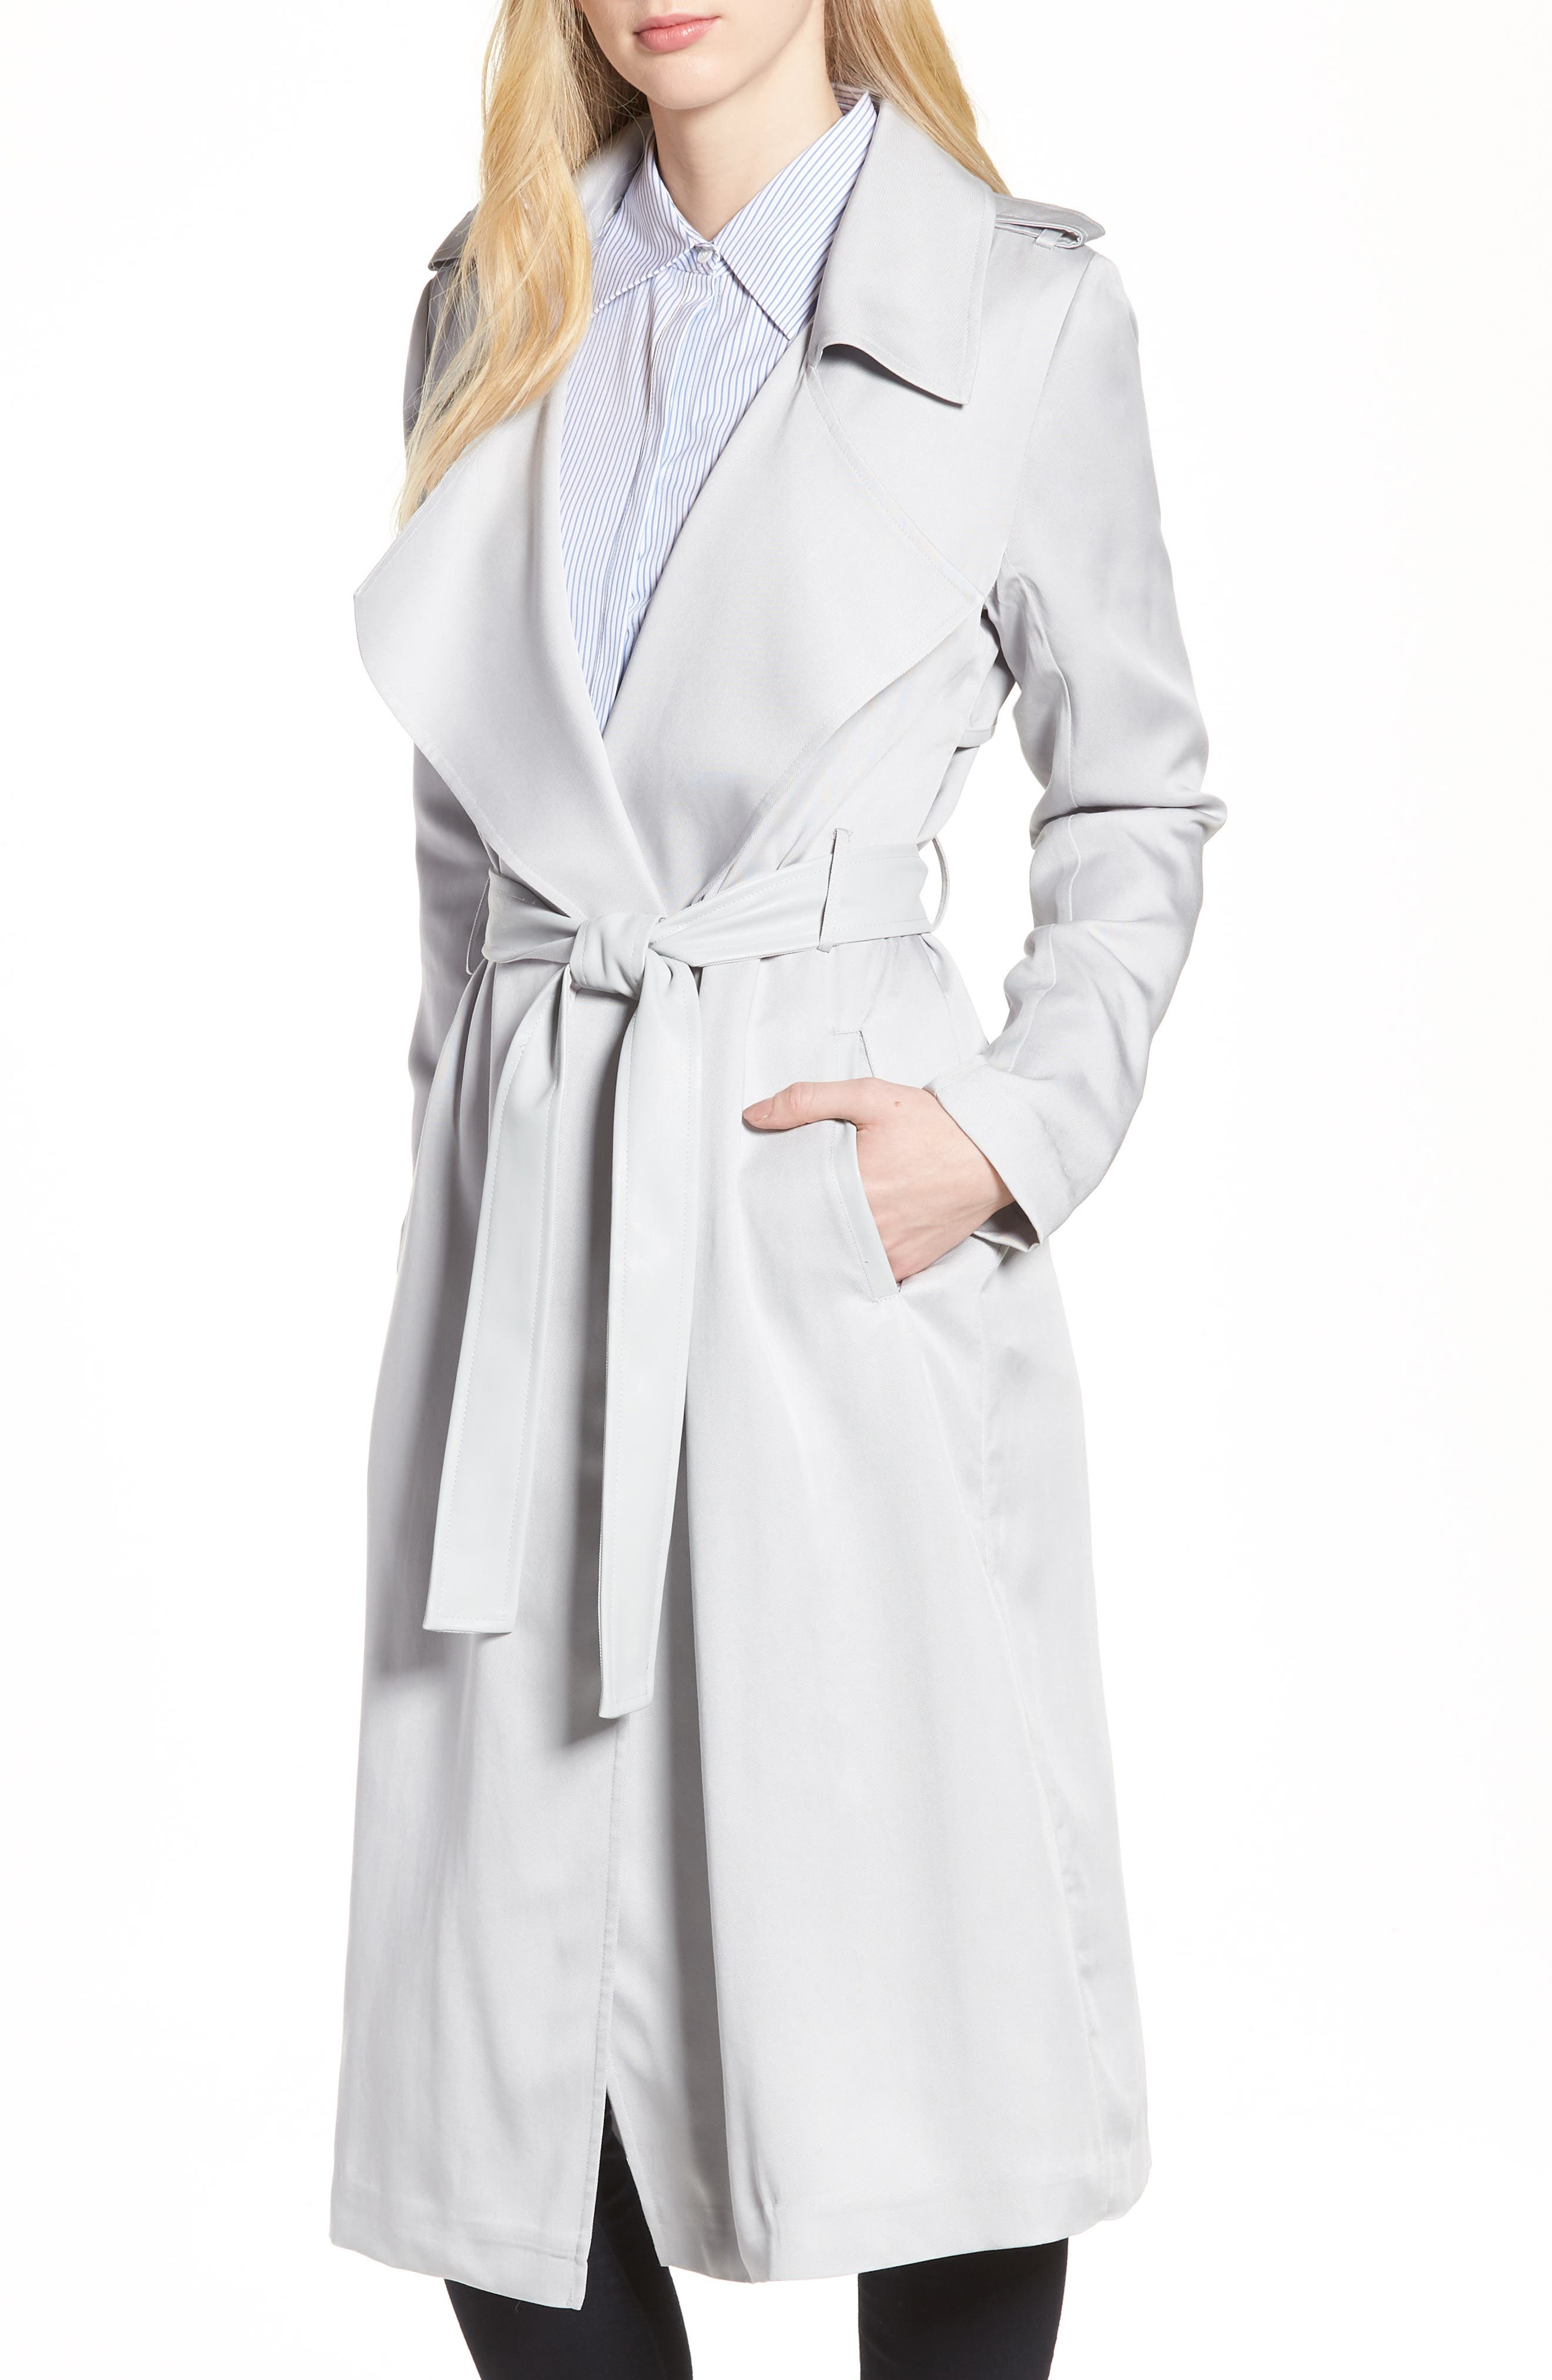 Badgley Mischka Faux Leather Trim Long Trench Coat,                             Main thumbnail 1, color,                             020